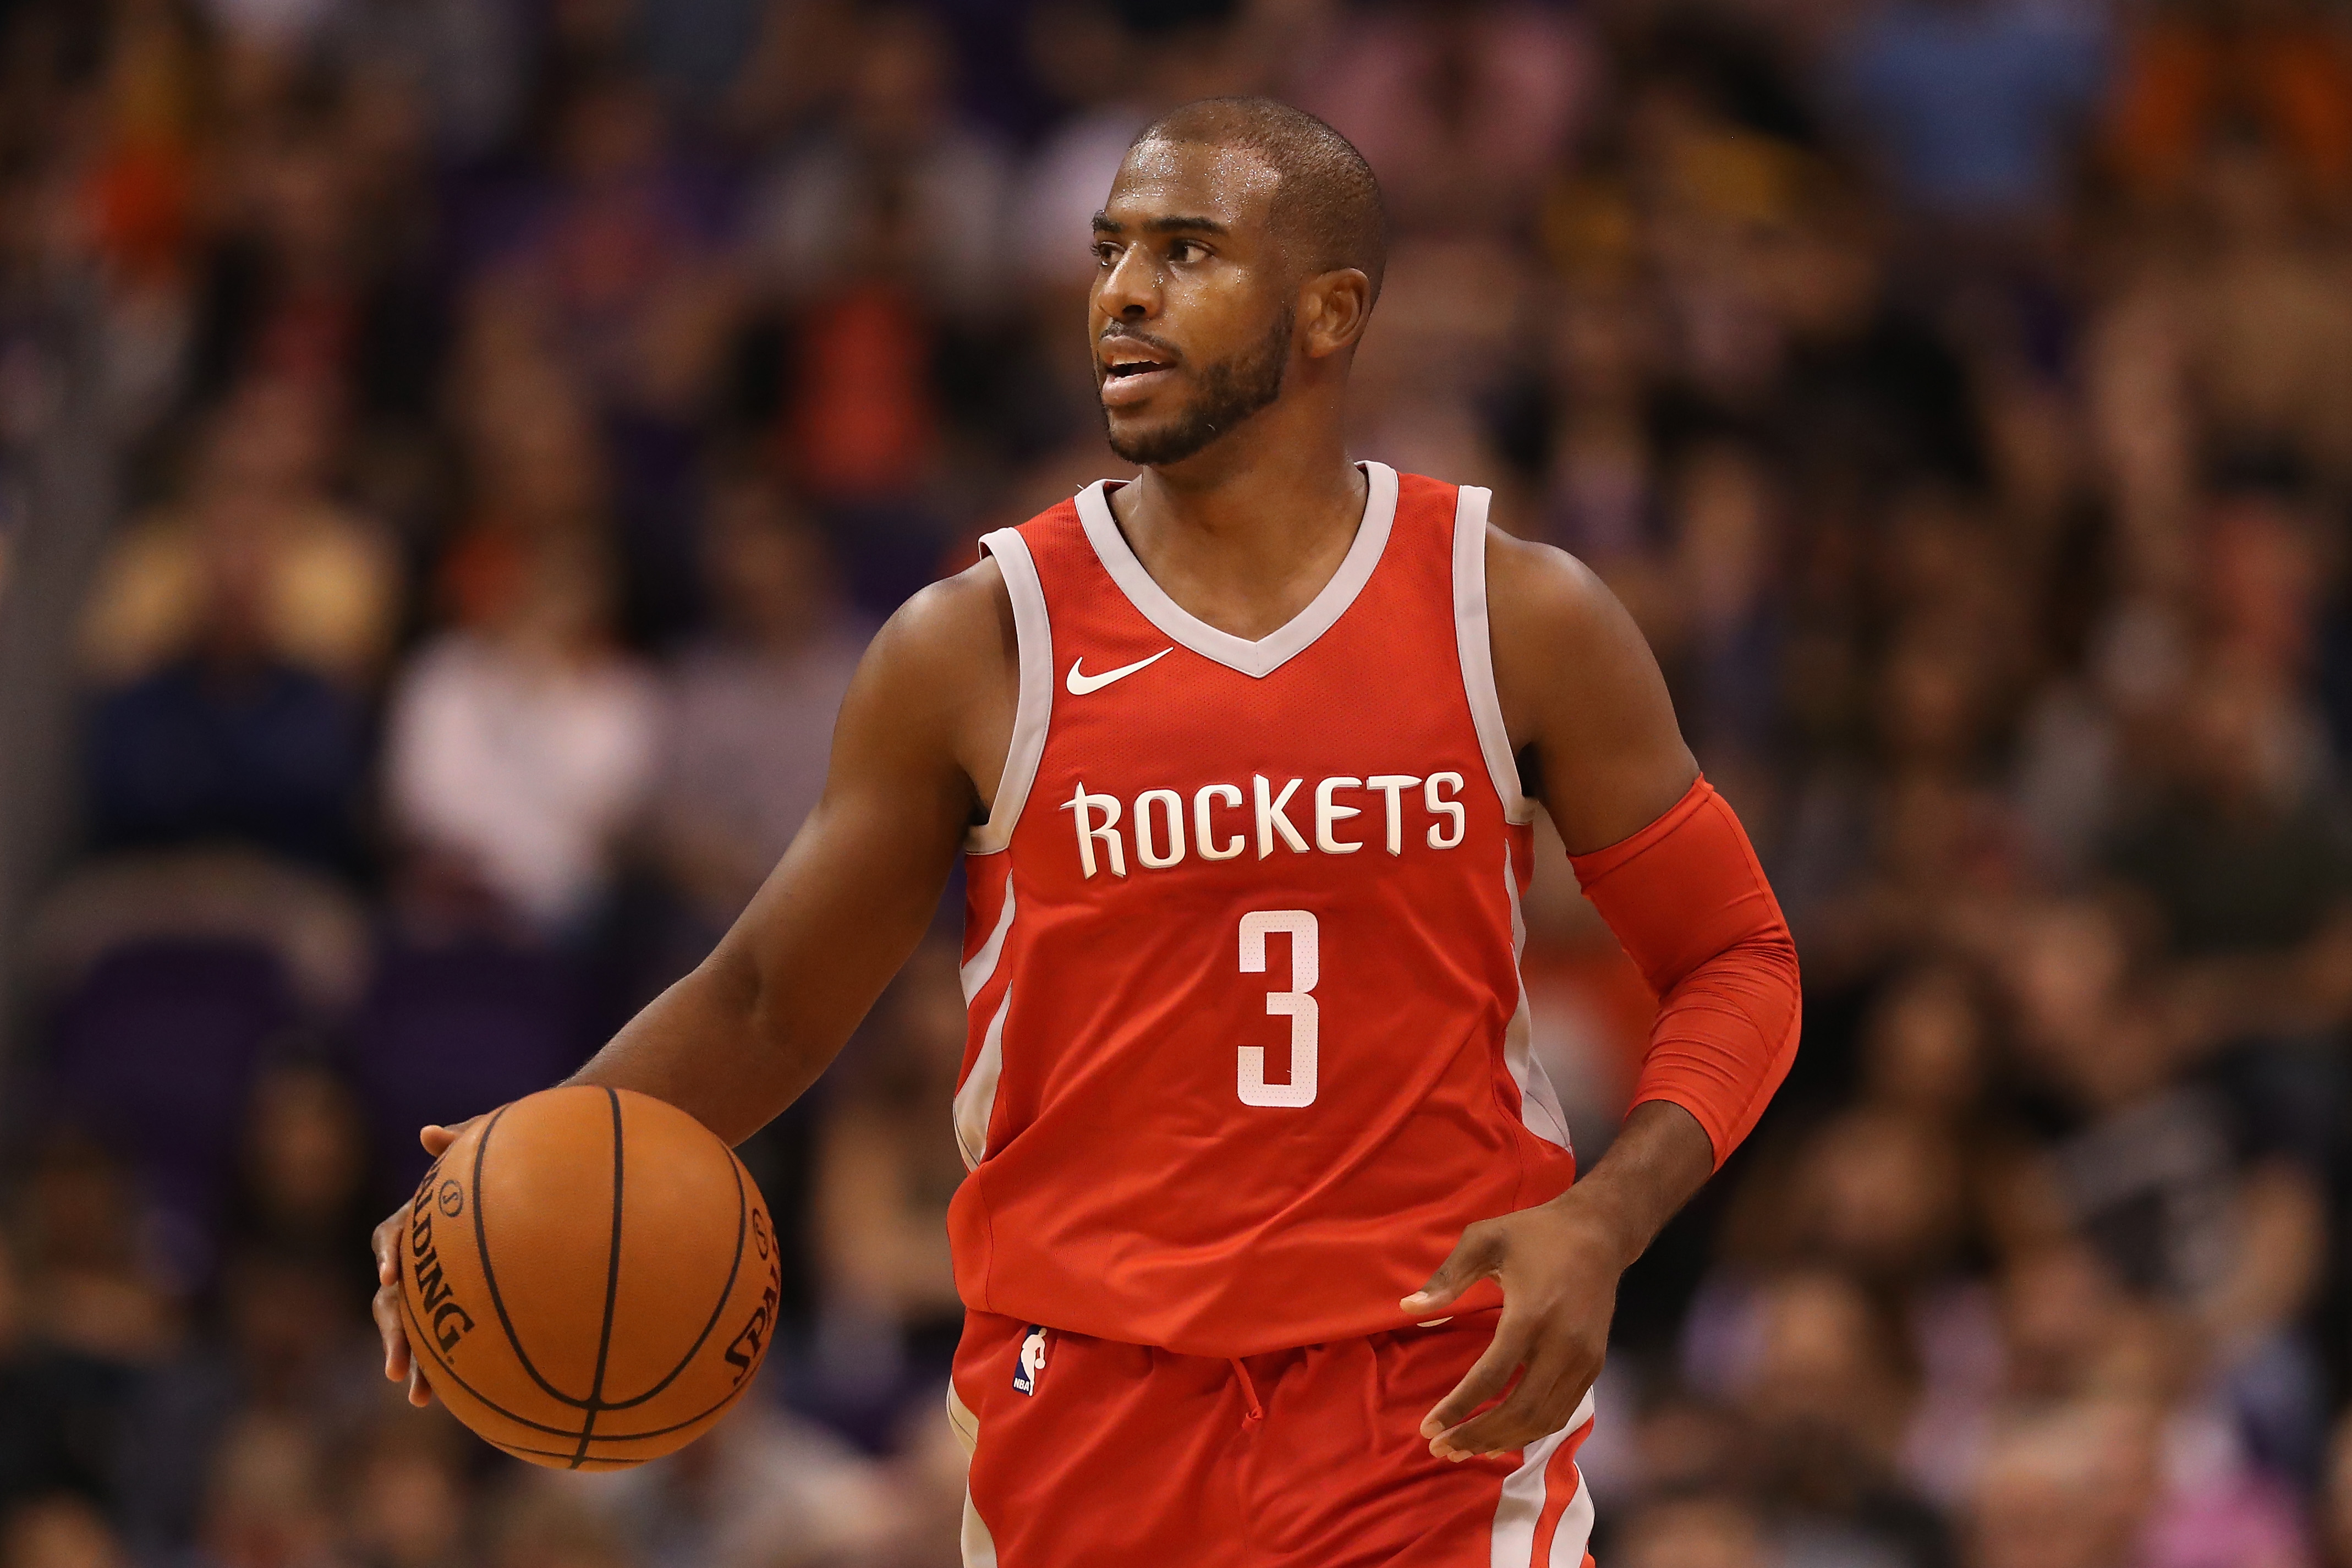 El Power Ranking de la NBA: Chris Paul y los Rockets siguen imparables